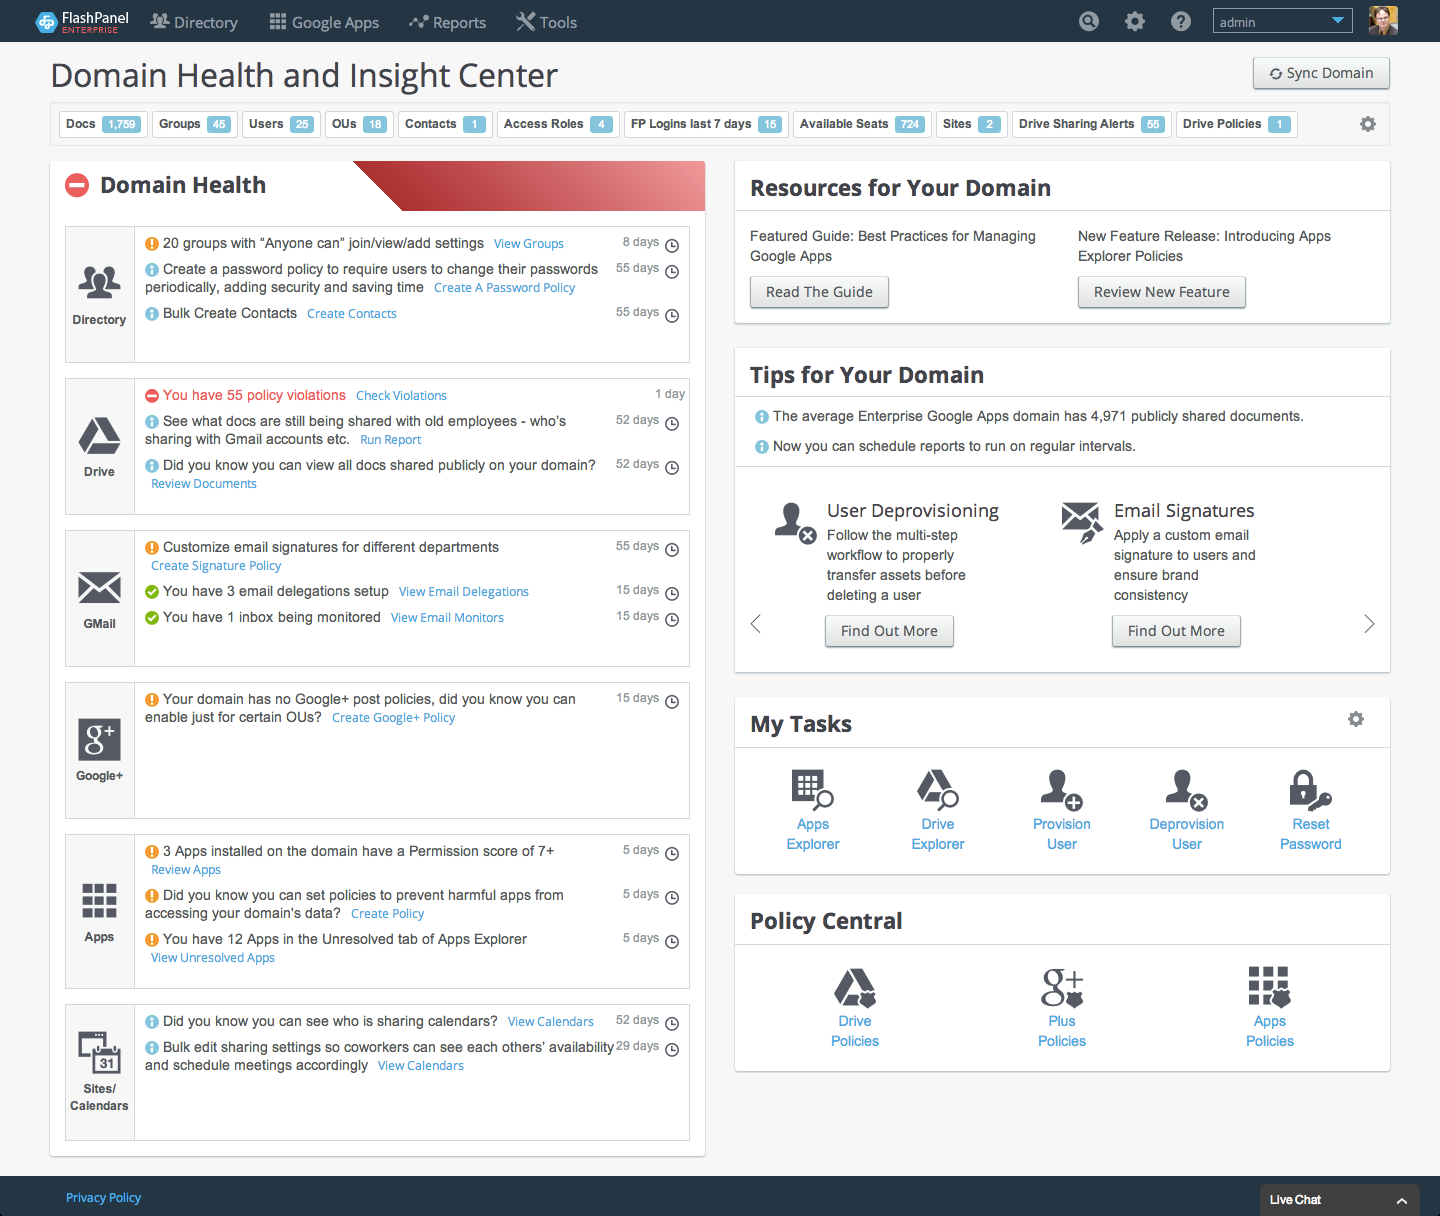 FlashPanel-Domain-Health-and-Insight-Center-R